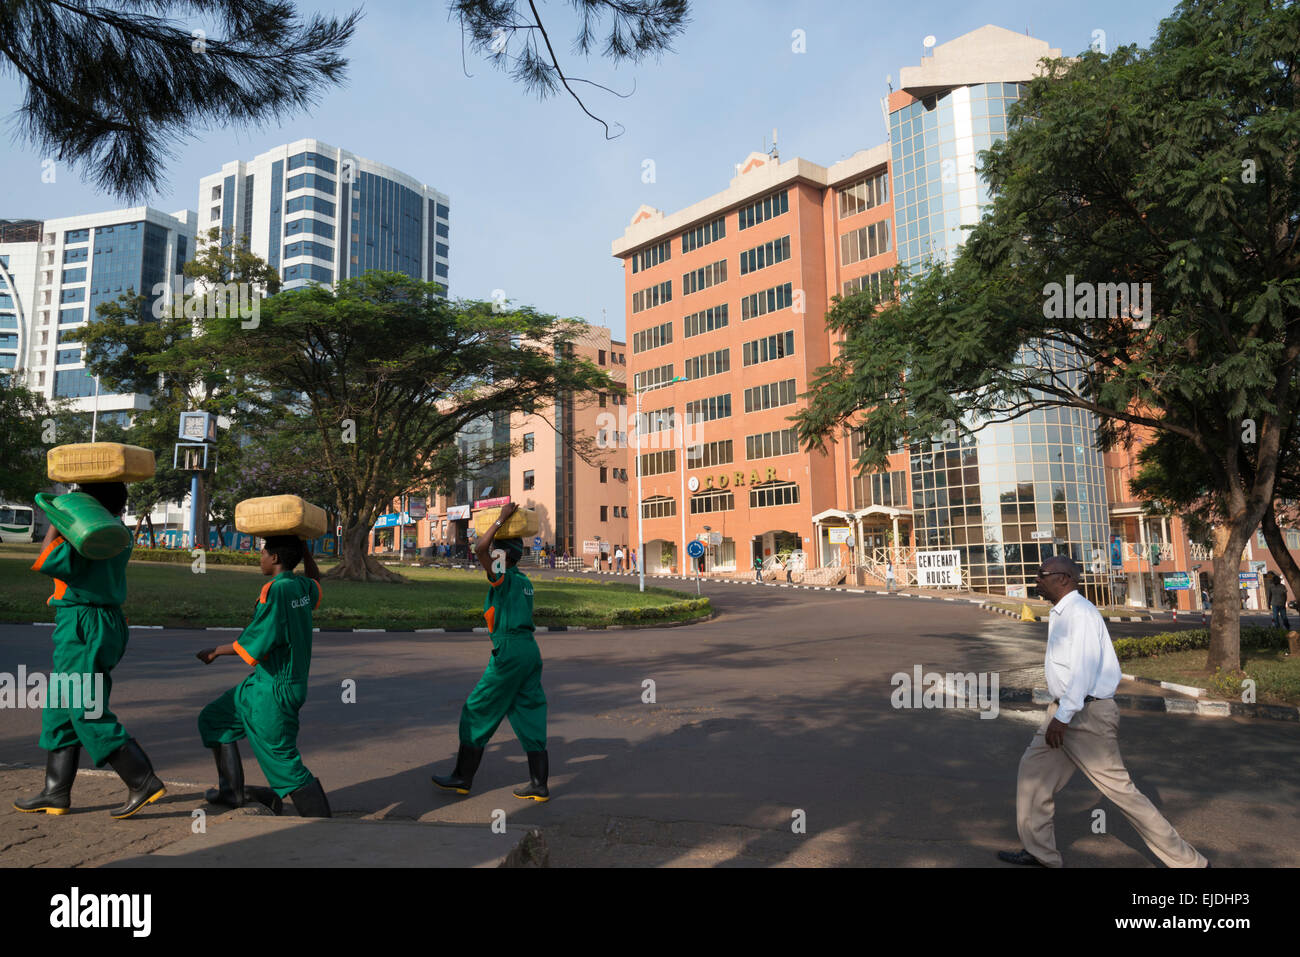 Kigali city center. Place de l' ind'ependence. Rwanda - Stock Image